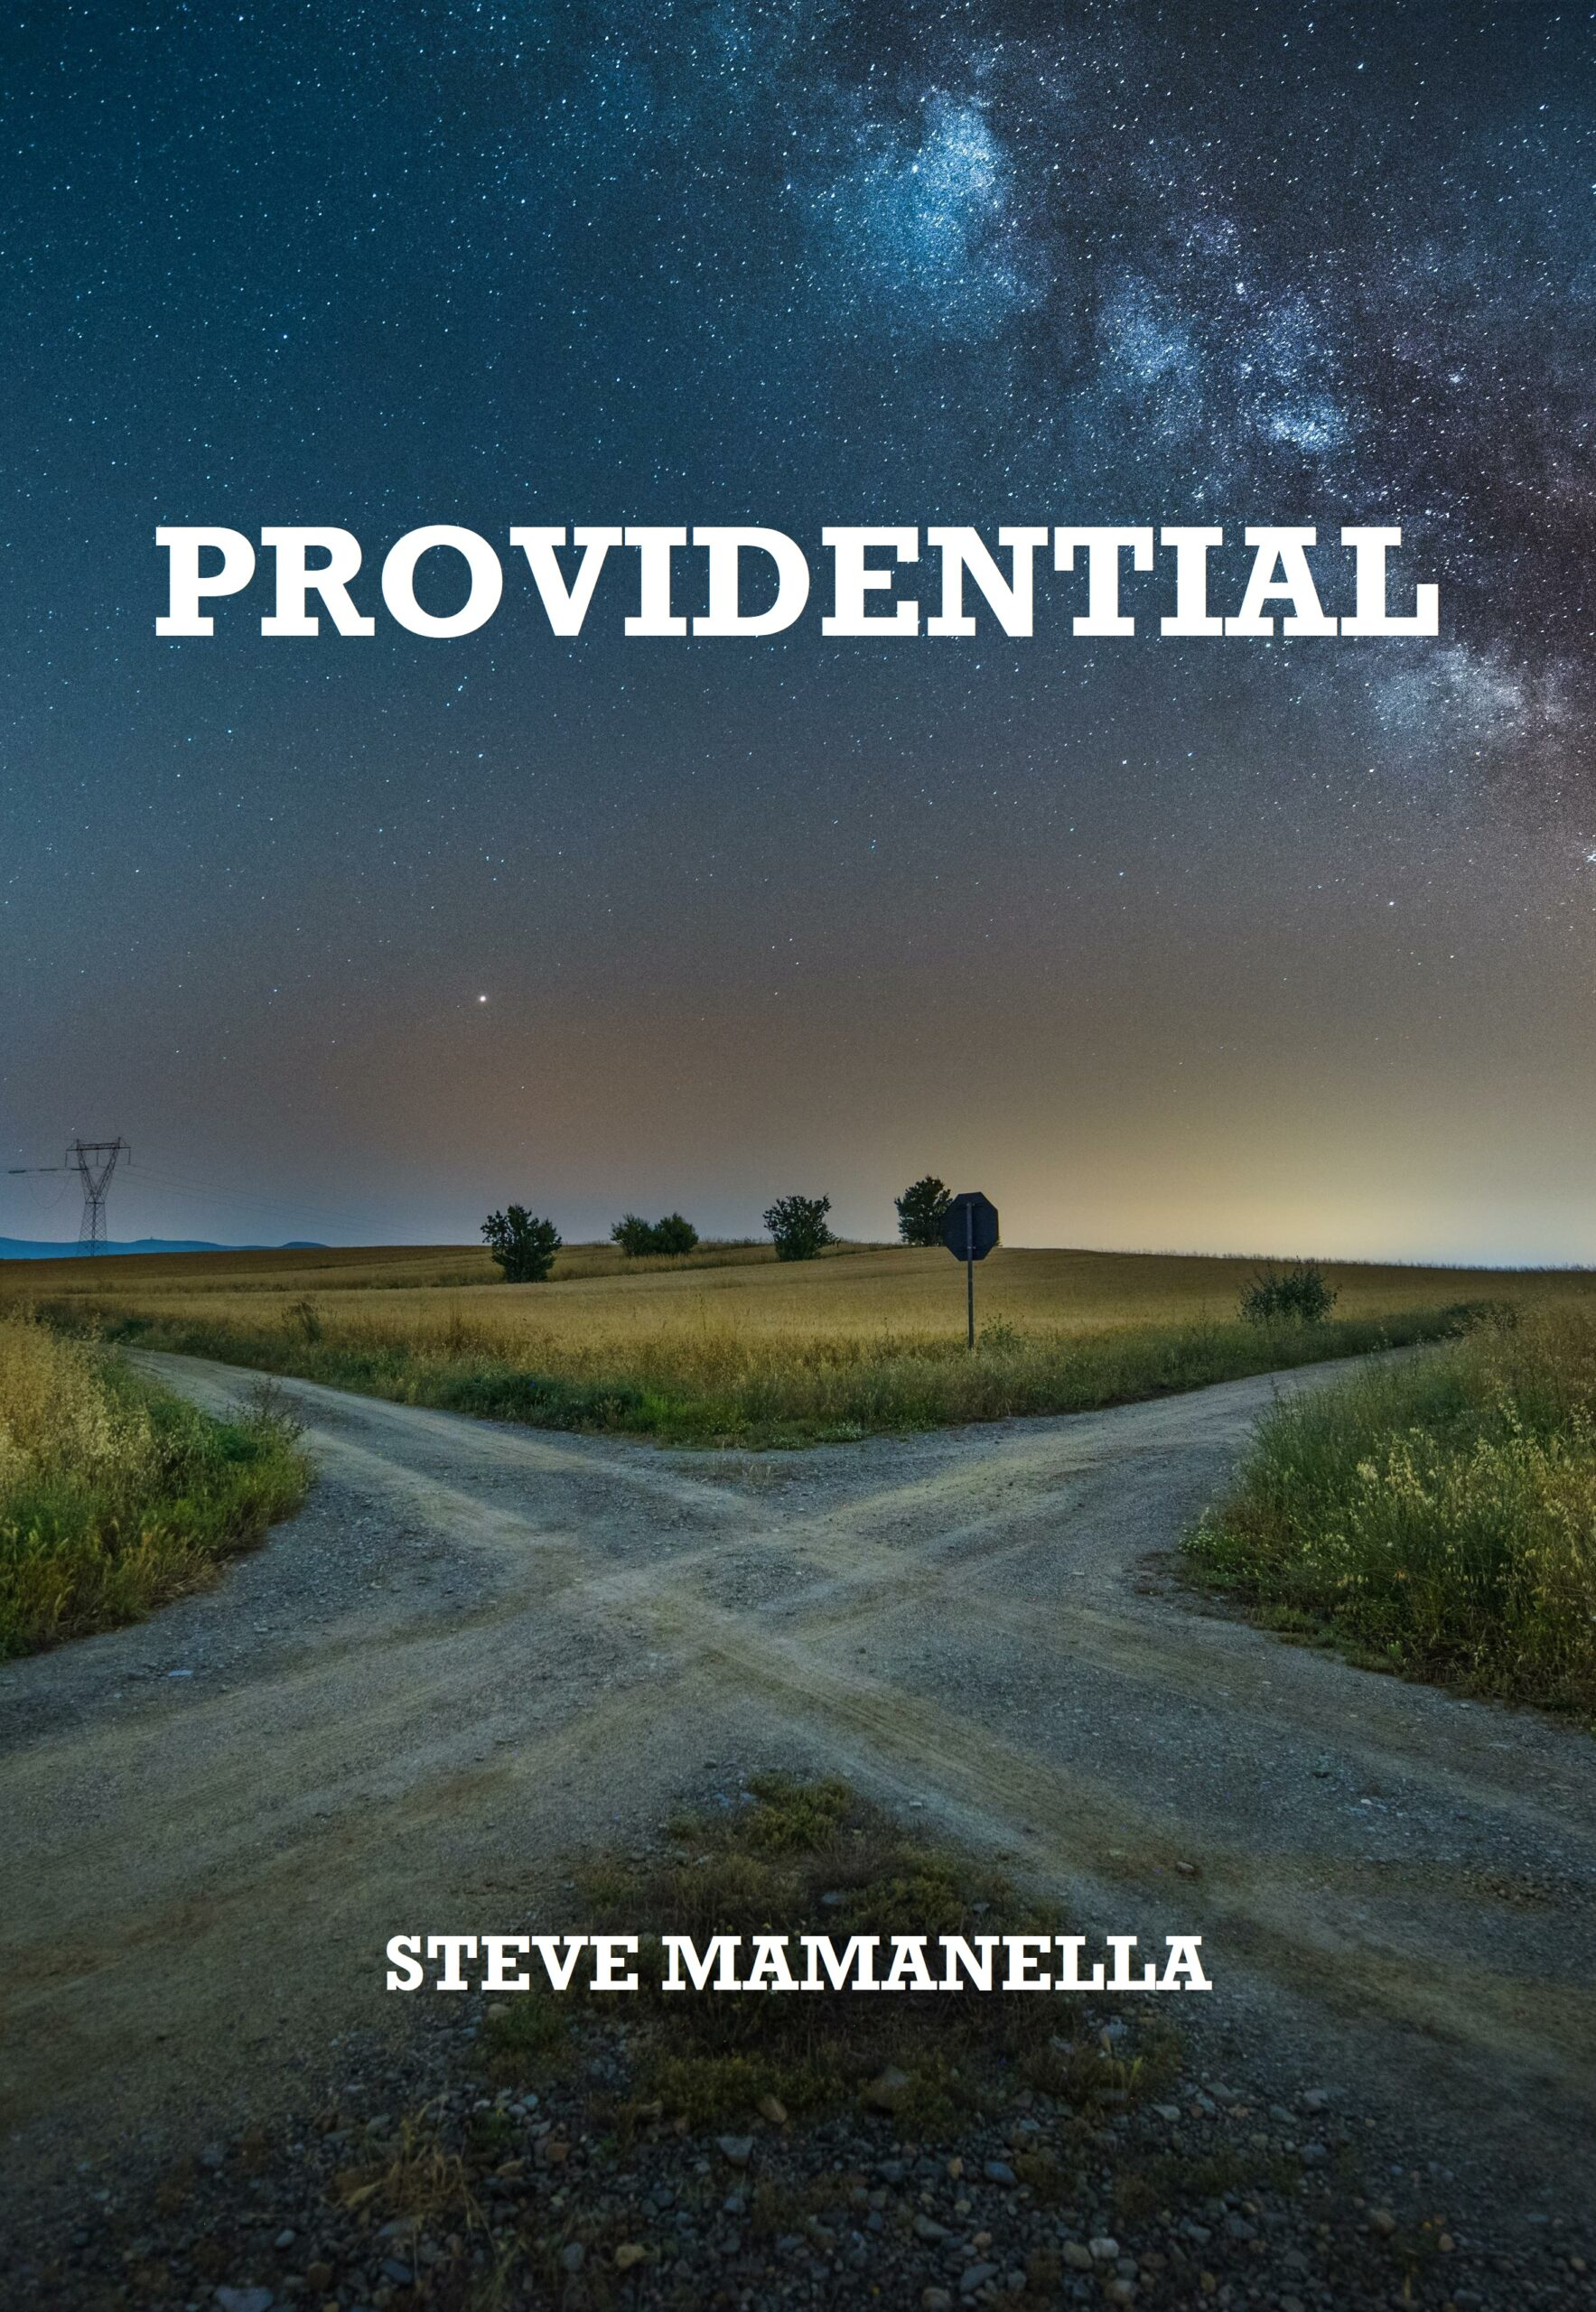 Providential by Steve Mamanella